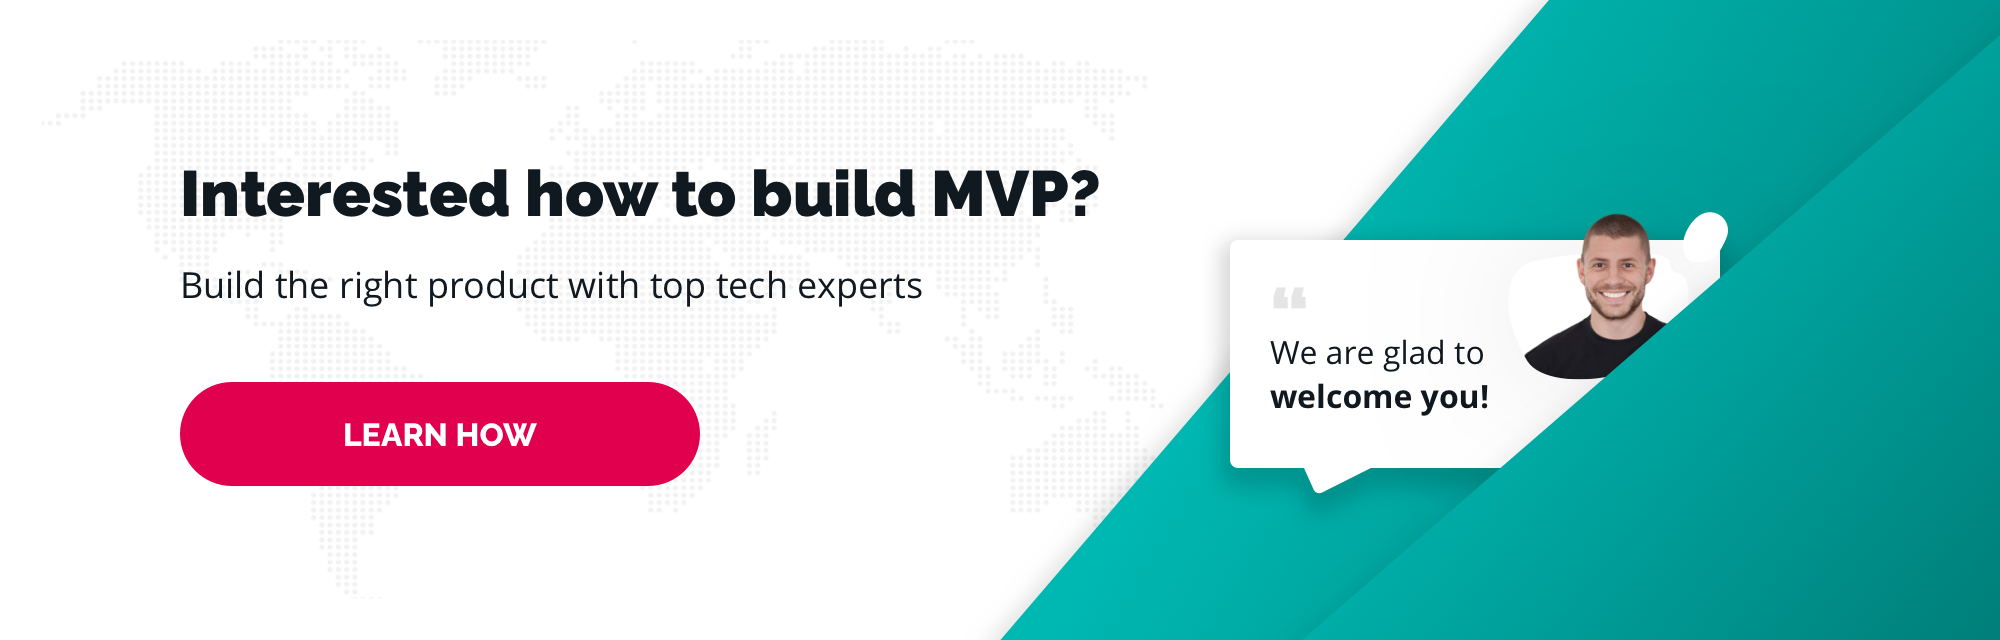 Interested how to build MVP?